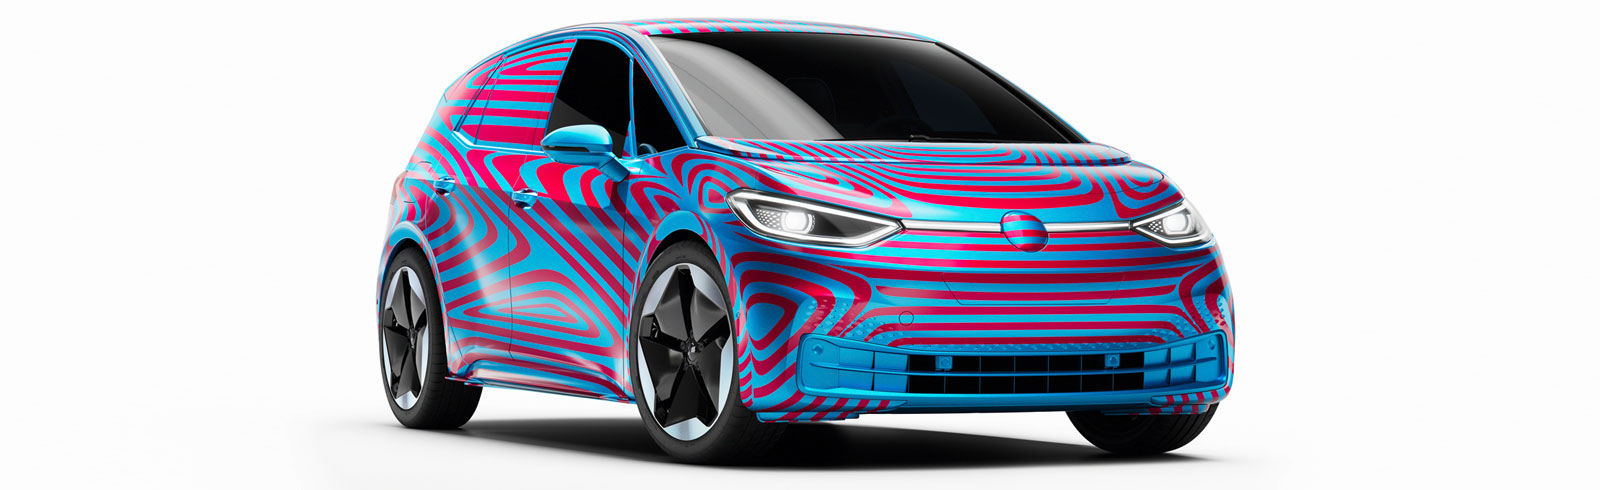 Volkswagen introduces the ID.3 - a Golf-sized all-electric vehicle available for pre-booking